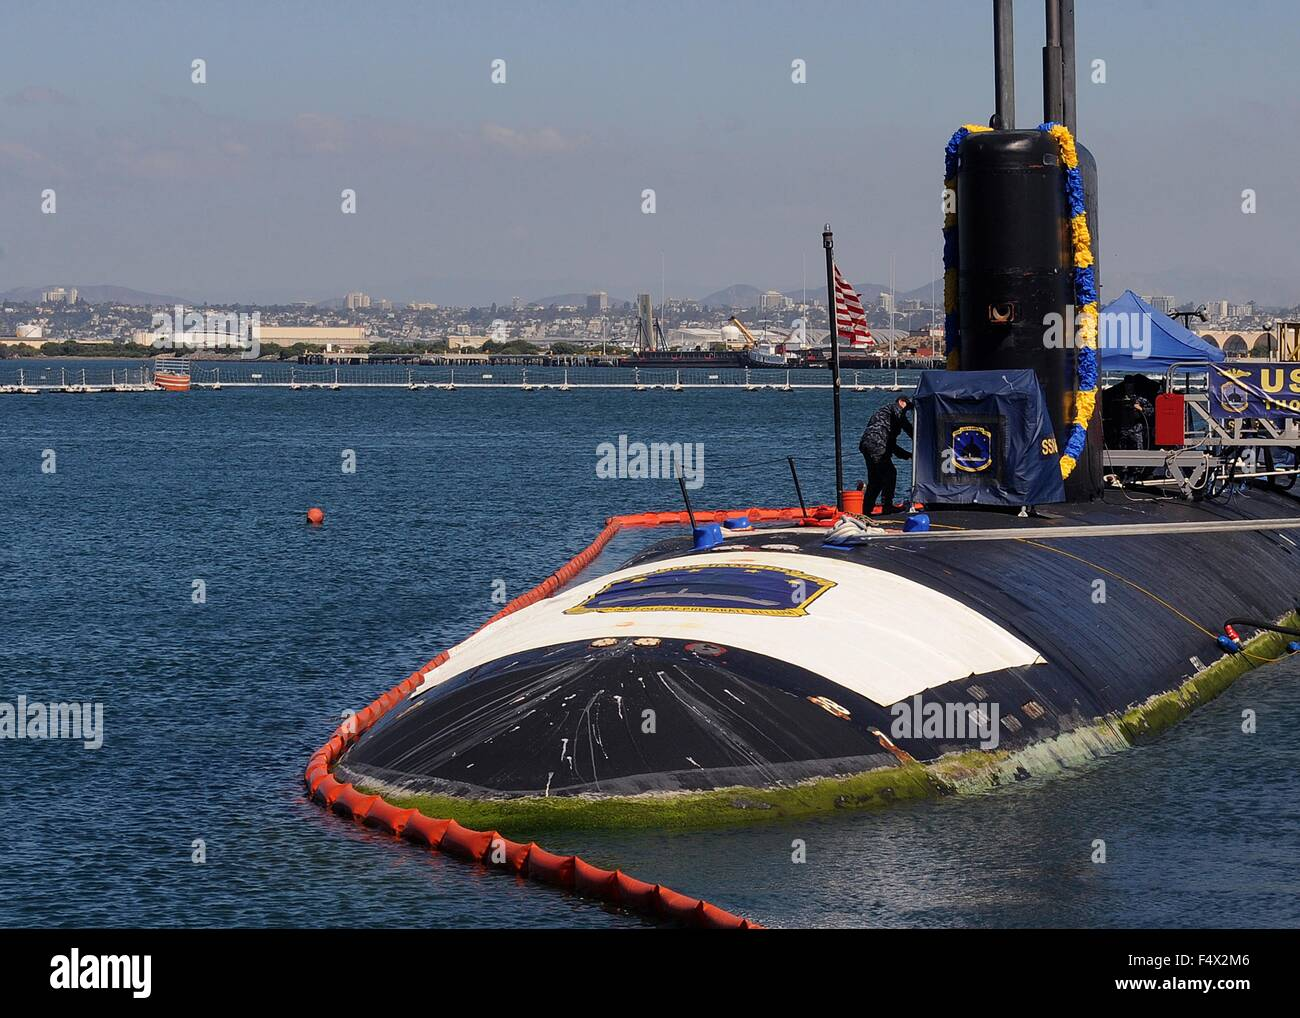 US Navy Los Angeles-class fast-attack submarine USS Hampton pier side at Naval Base Point Loma October 13, 2015 - Stock Image